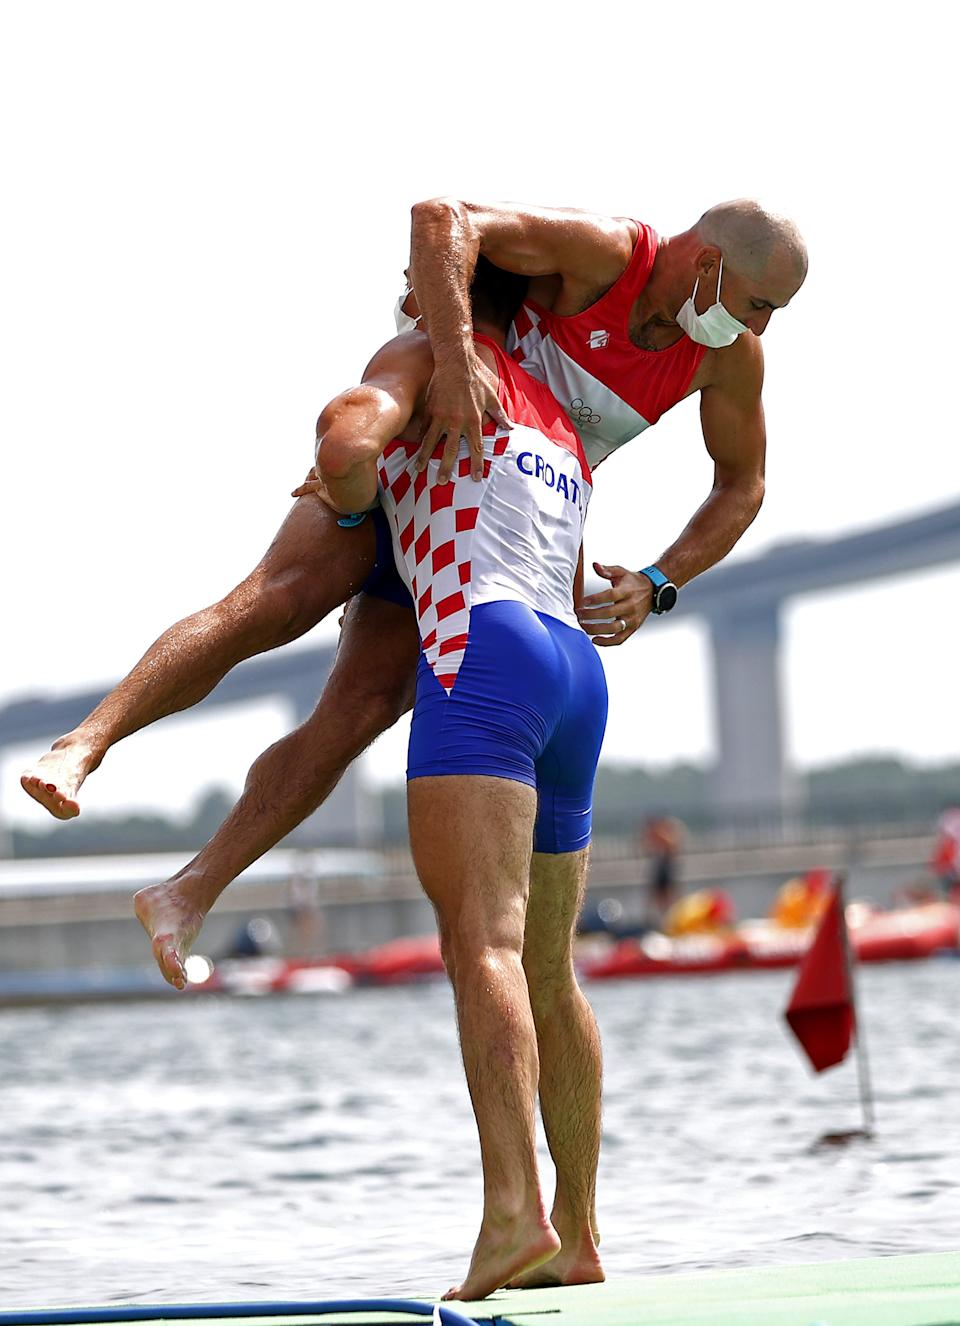 <p>Martin Sinkovic and Valent Sinkovic of Team Croatia celebrate winning the gold medal during the Men's Pair Final A on day six of the Tokyo 2020 Olympic Games at Sea Forest Waterway on July 29, 2021 in Tokyo, Japan. (Photo by Maja Hitij/Getty Images)</p>